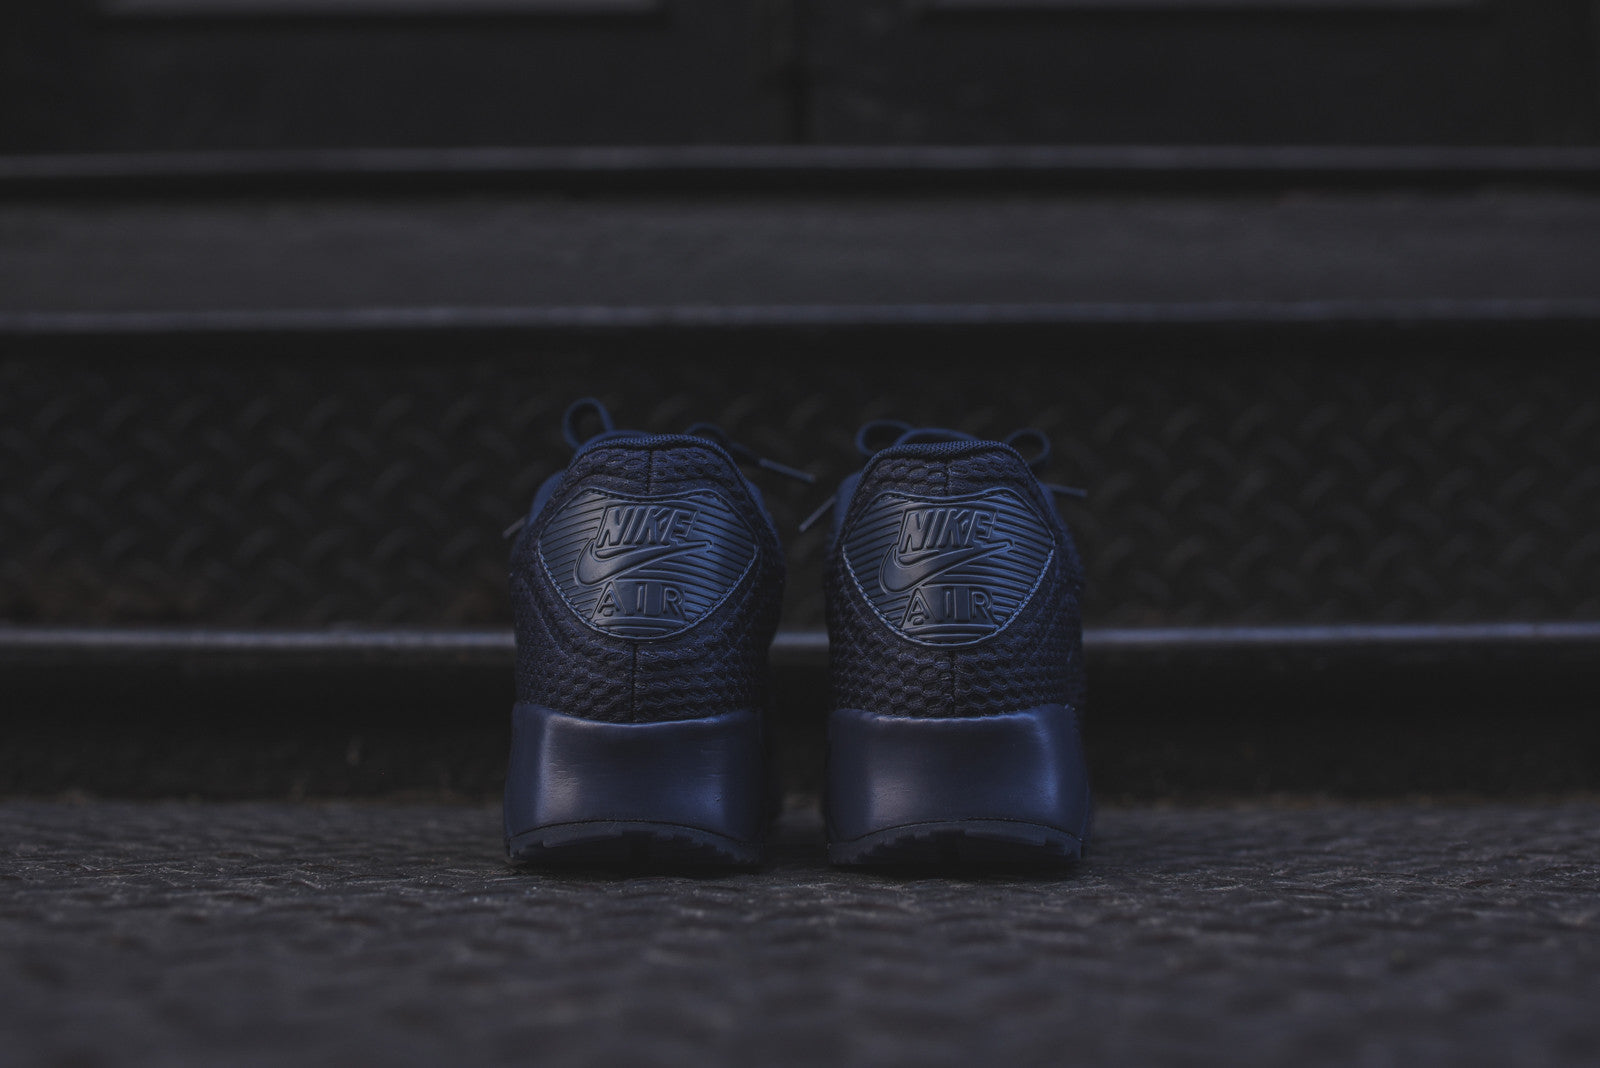 Nike_Air_Max_90_BR_Pack_Navy_5.jpg